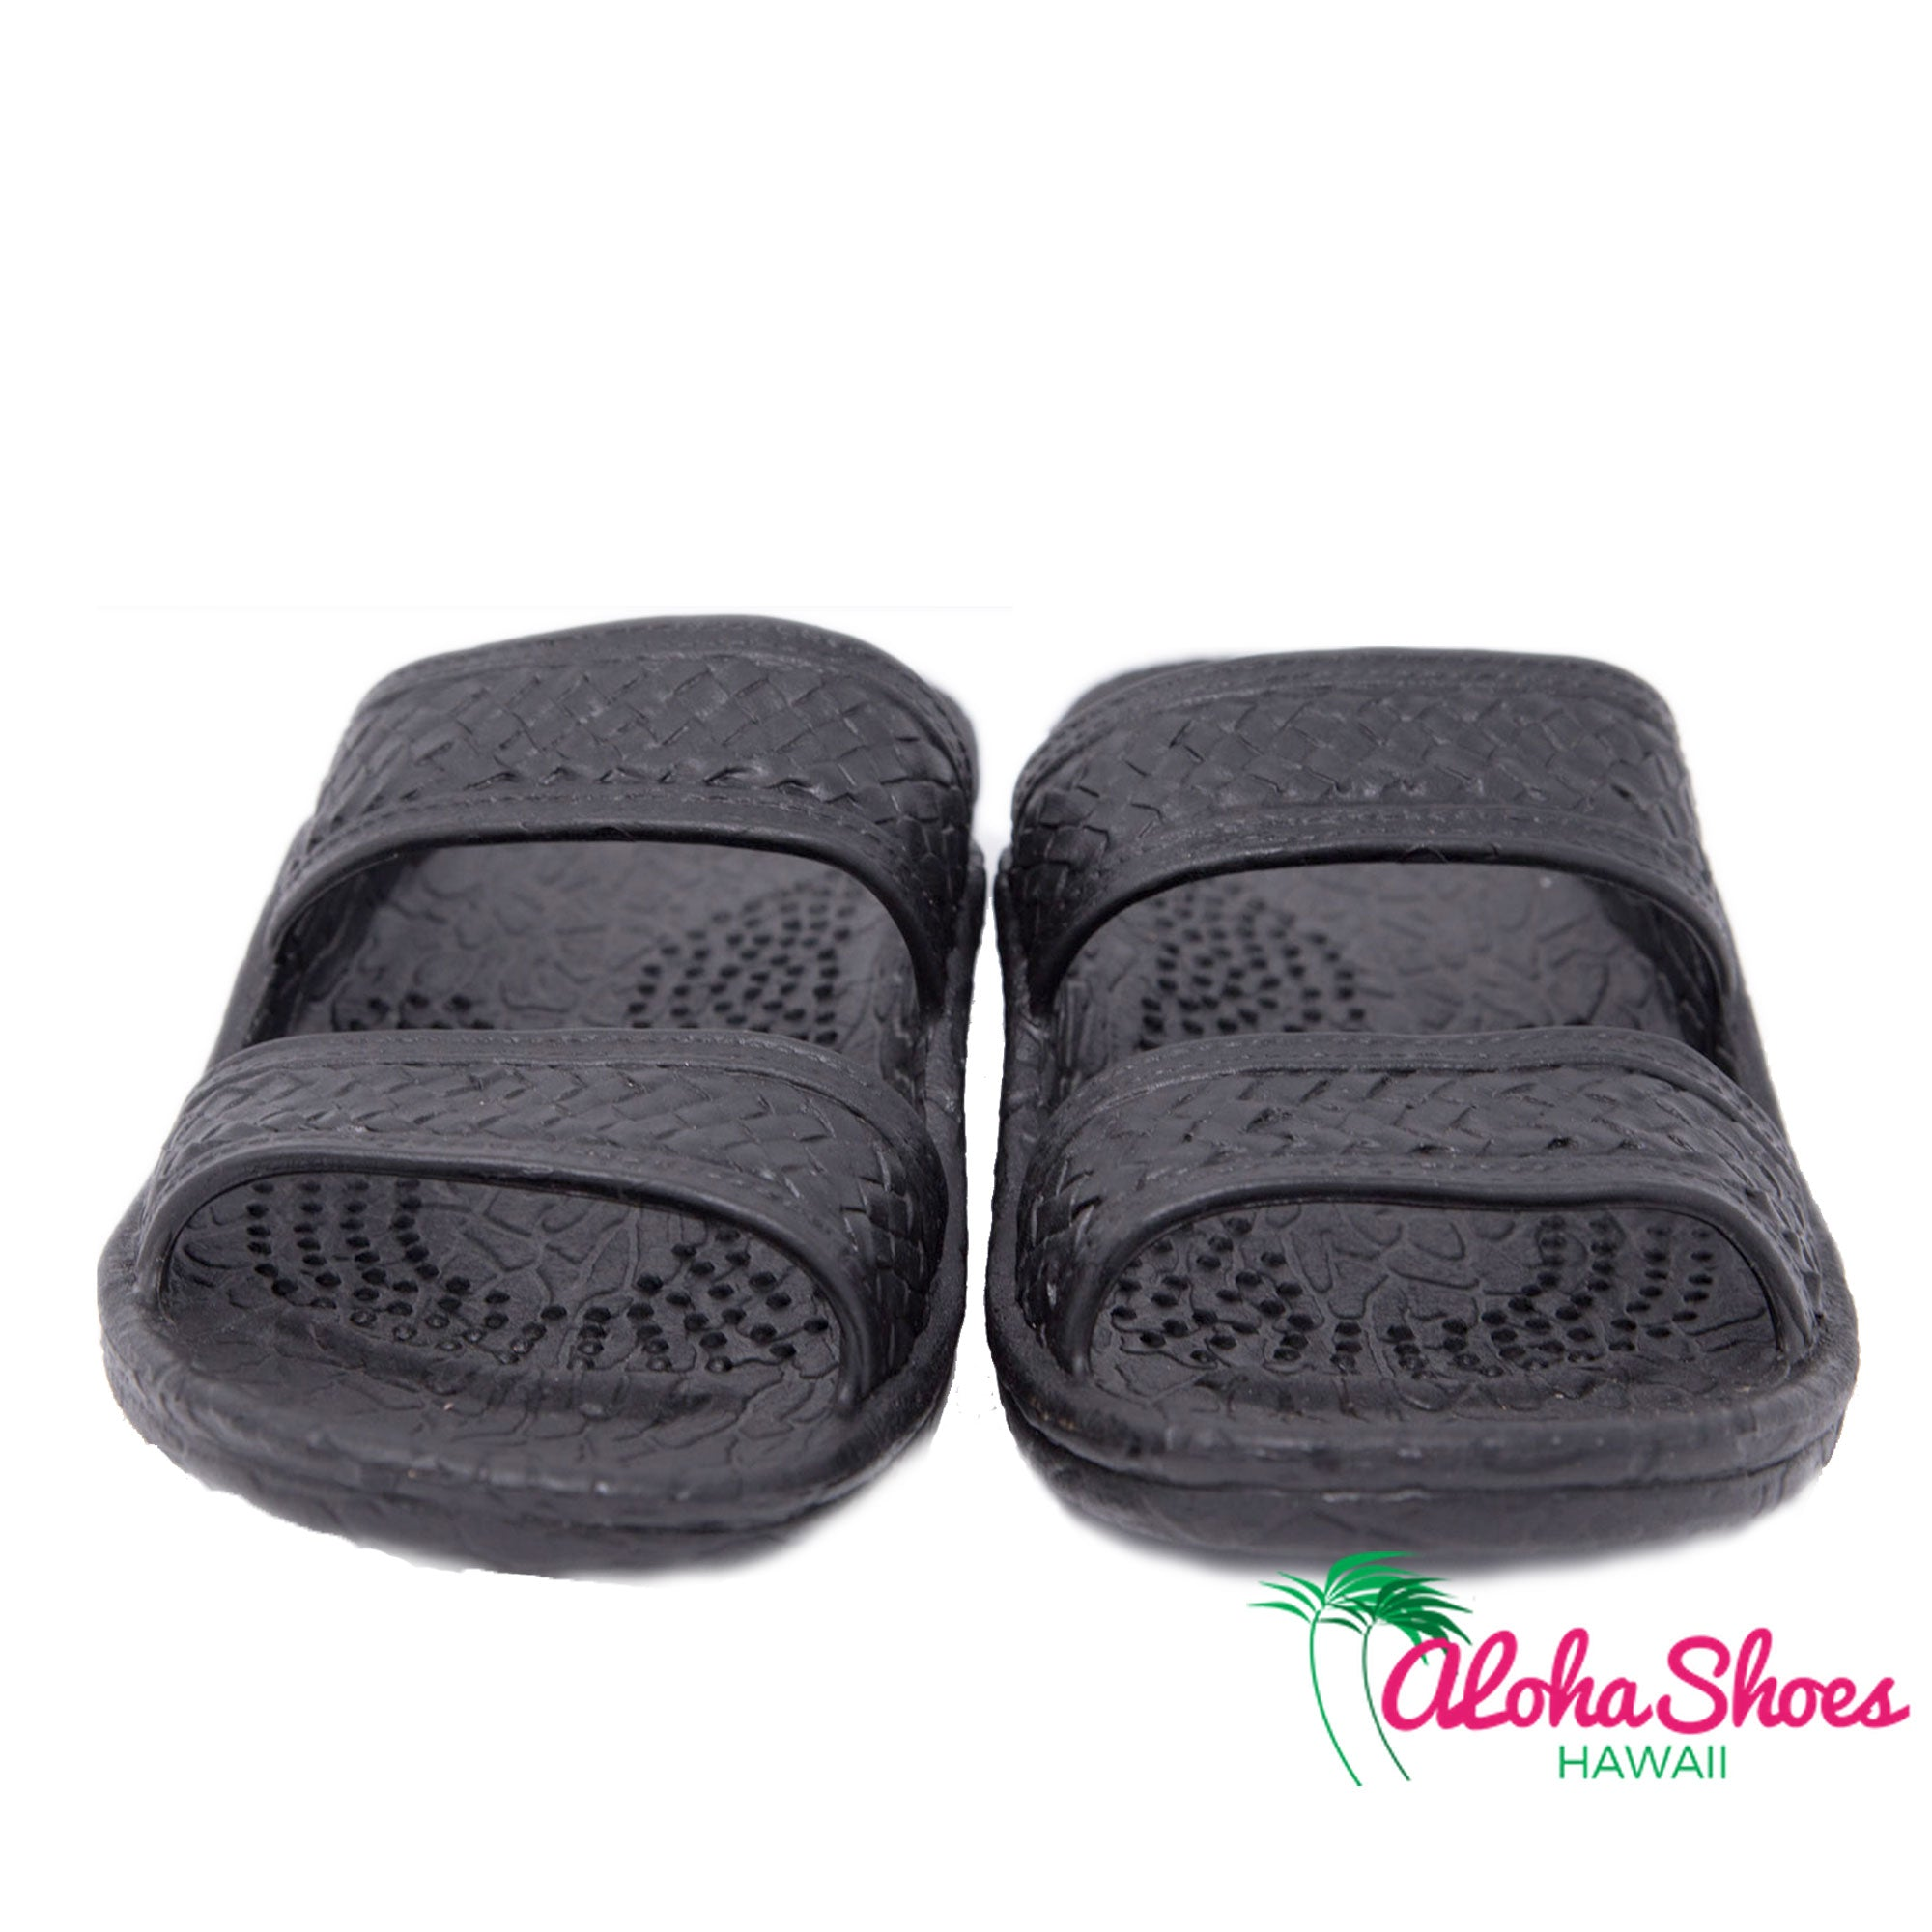 4b1afe21cae0 Products - AlohaShoes.com